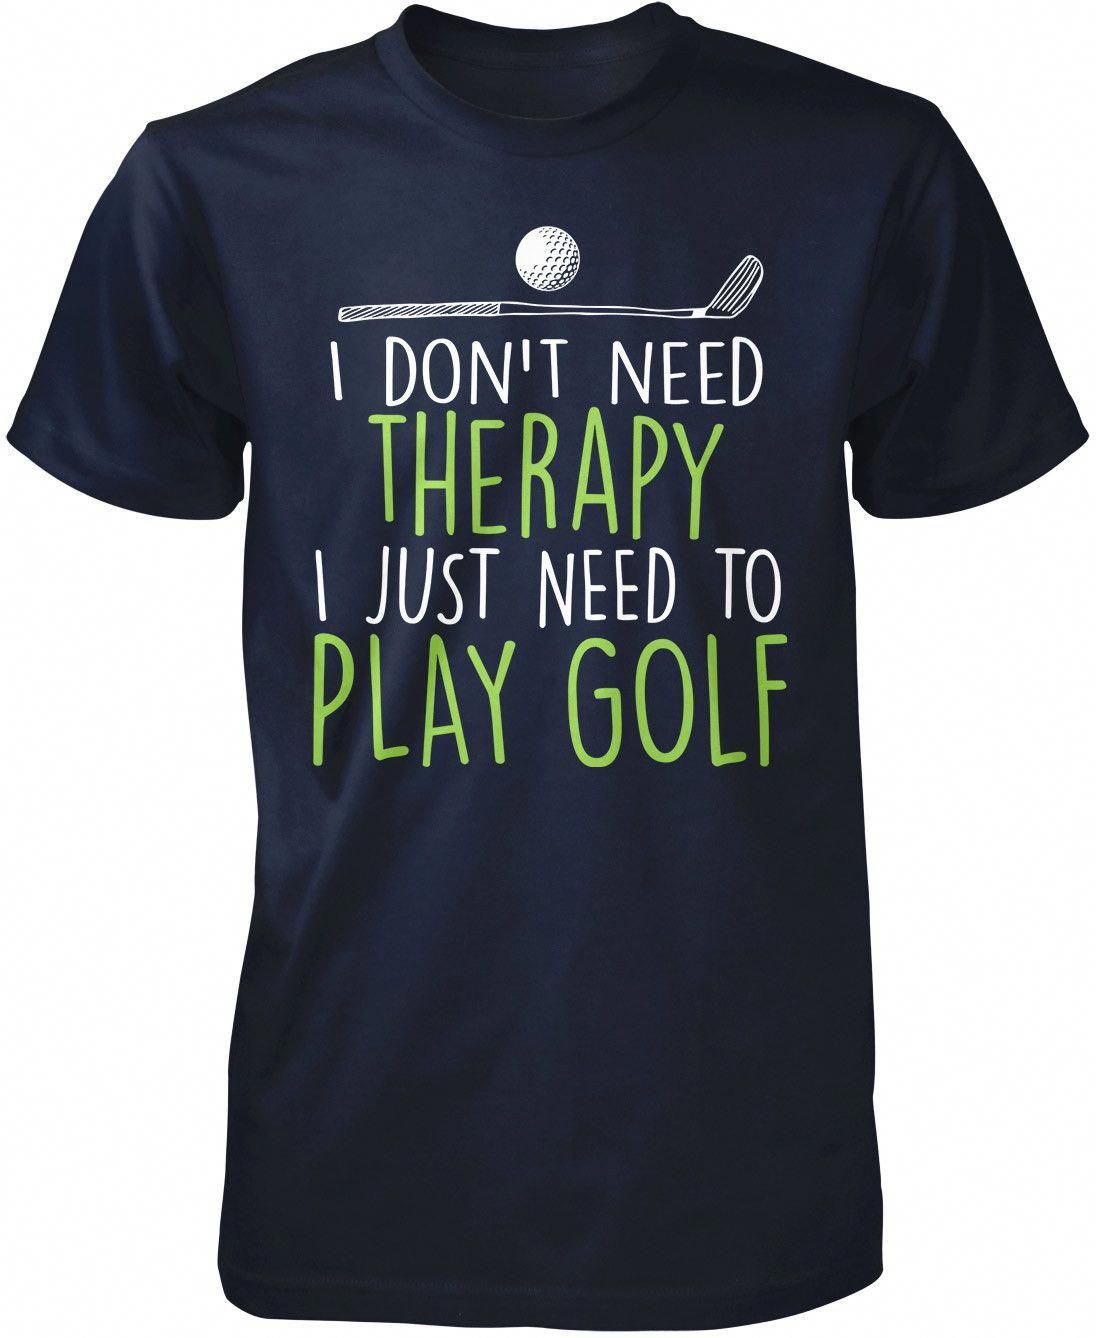 I don't need therapy, I just need to play golf The perfect